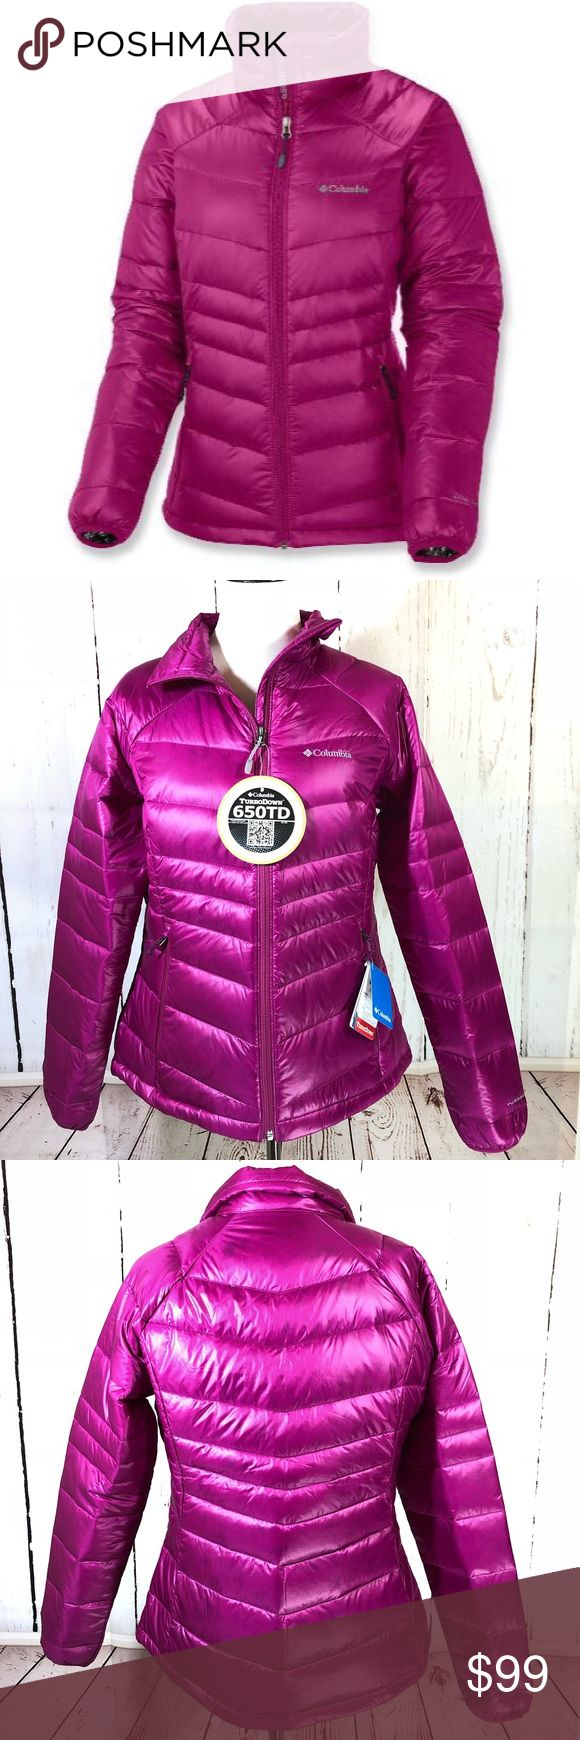 """NWT Columbia Pink 650 Turbo Down Puffer Jacket L NWT $150 Columbia Sz Large Pink 650 Turbo Puffer Down Jacket Omni Heat Thermal Omni-Heat Thermal Insulation 550 Down-fill + 100g Omni-Heat Insulation Toggle waist Zip front Zip pockets Banded sleeves Water and stain resistant Shown on a medium size mannequin  Approximate flat measurements:  Chest: 22"""" Shoulders: drop Waist: 20"""" Length: 27"""" Underarm Length: 23"""" Columbia Jackets & Coats Puffers"""